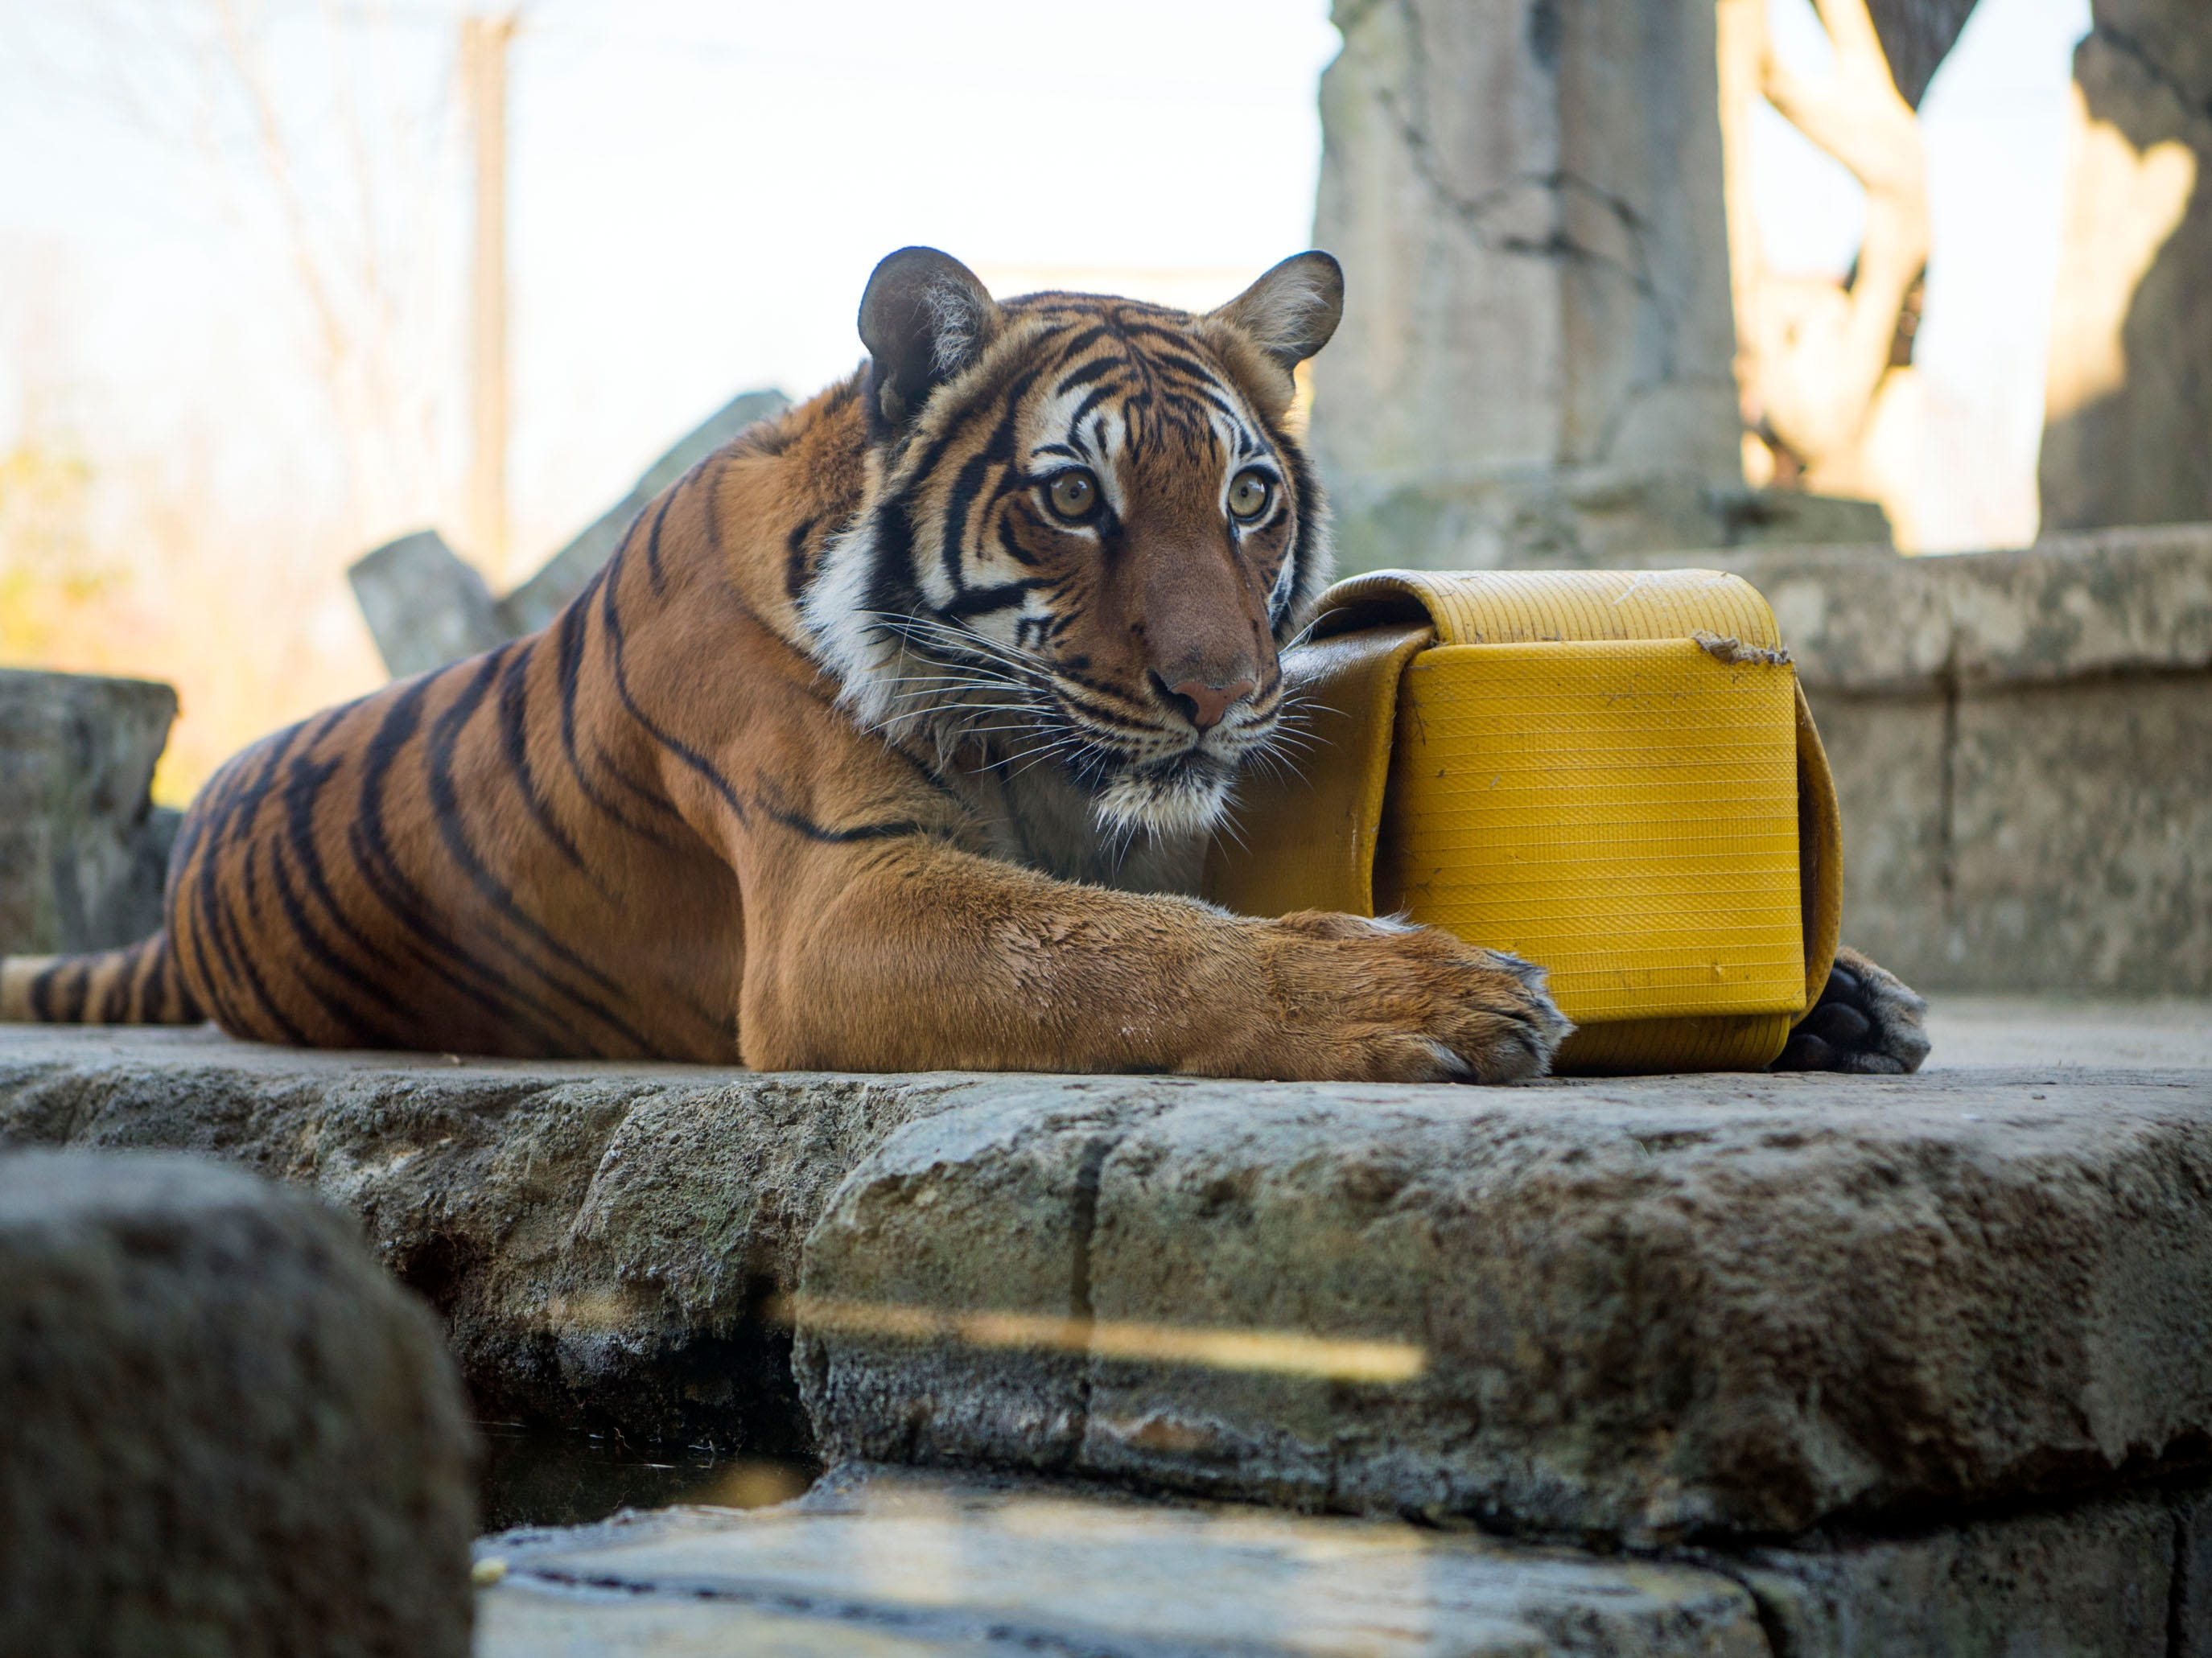 Arya, a rare Malayan tiger, at Zoo Knoxville's Tiger Forest habitat on Monday, January 28, 2019.